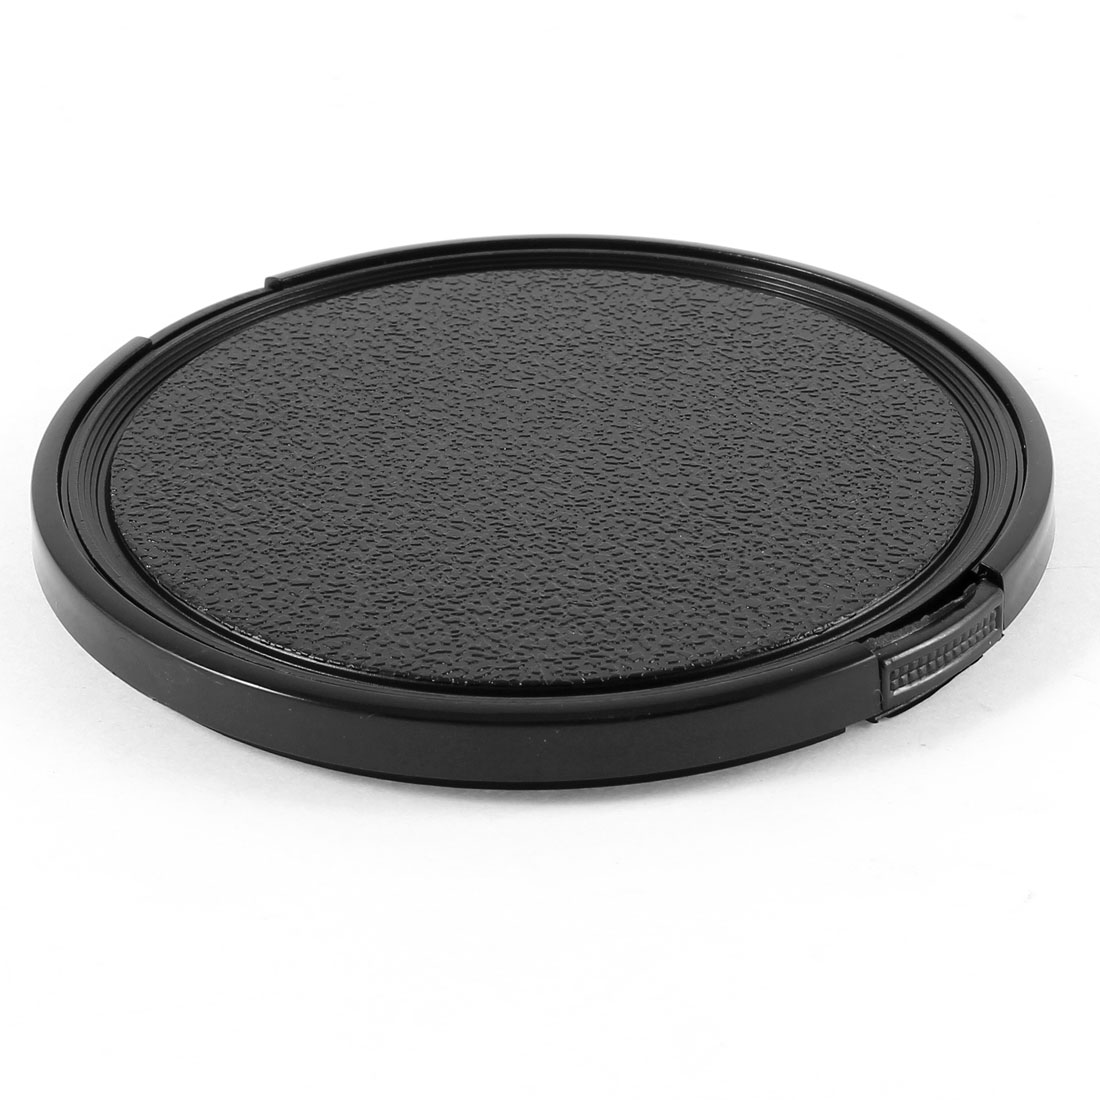 Univeral Camera 86mm Diameter Front Cap Cover Black for Lens Filter